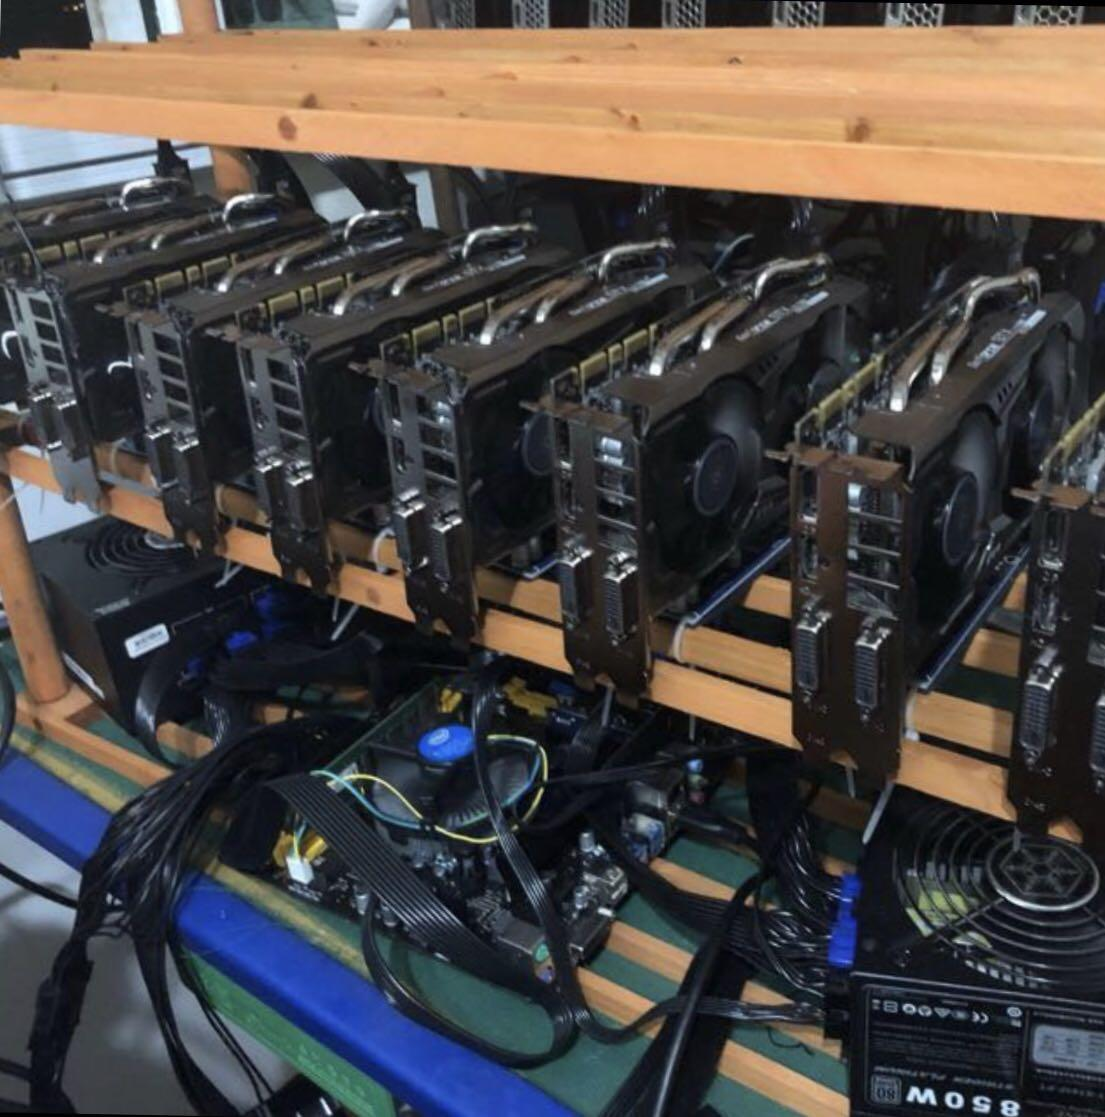 Mining rig for sale (8 x 1070), Electronics, Computers